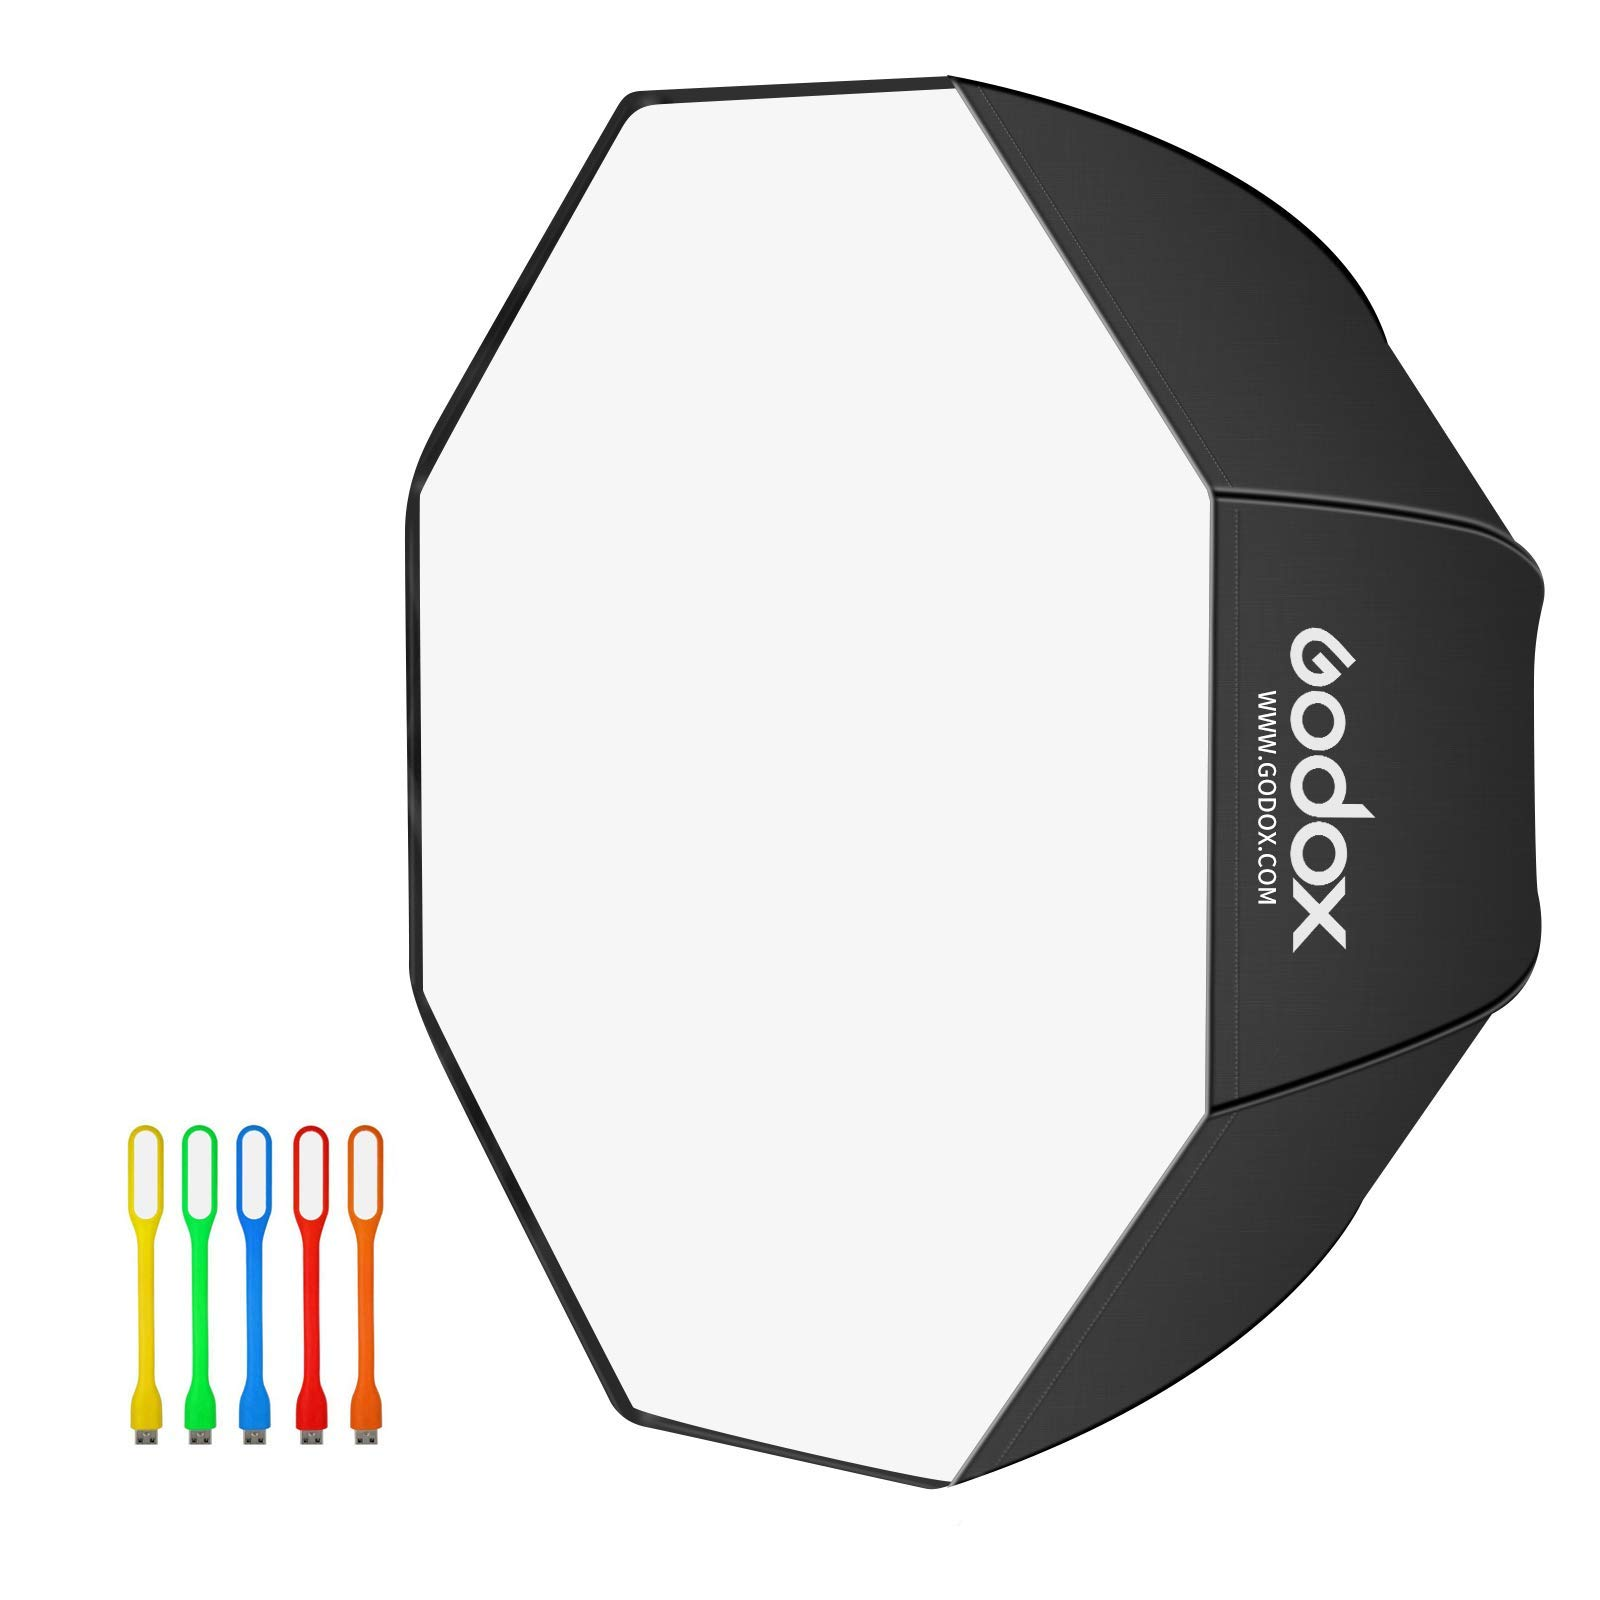 Godox 32 inches / 80cm Umbrella Octagon Softbox Reflector Diffuser